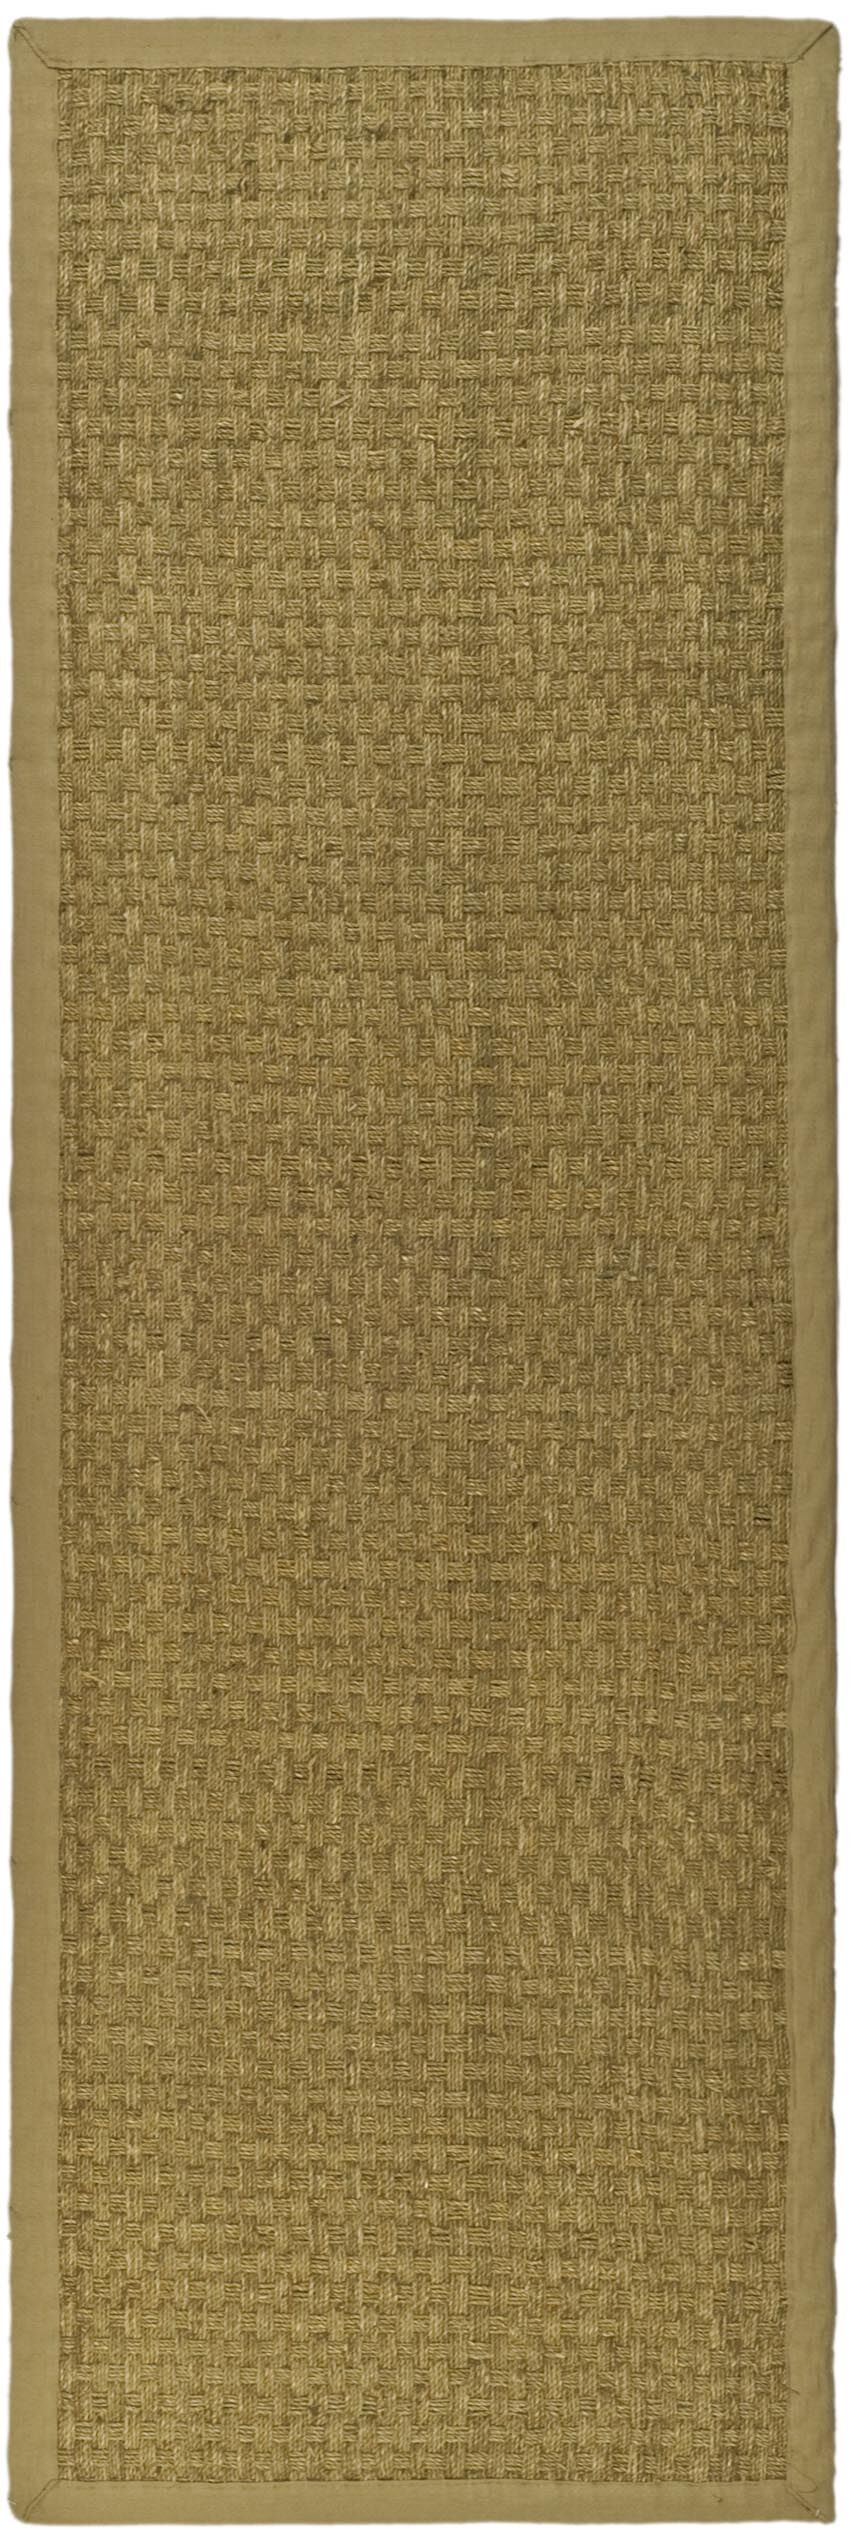 Richmond Hand-Woven Natural/Beige Area Rug Rug Size: Runner 2'6